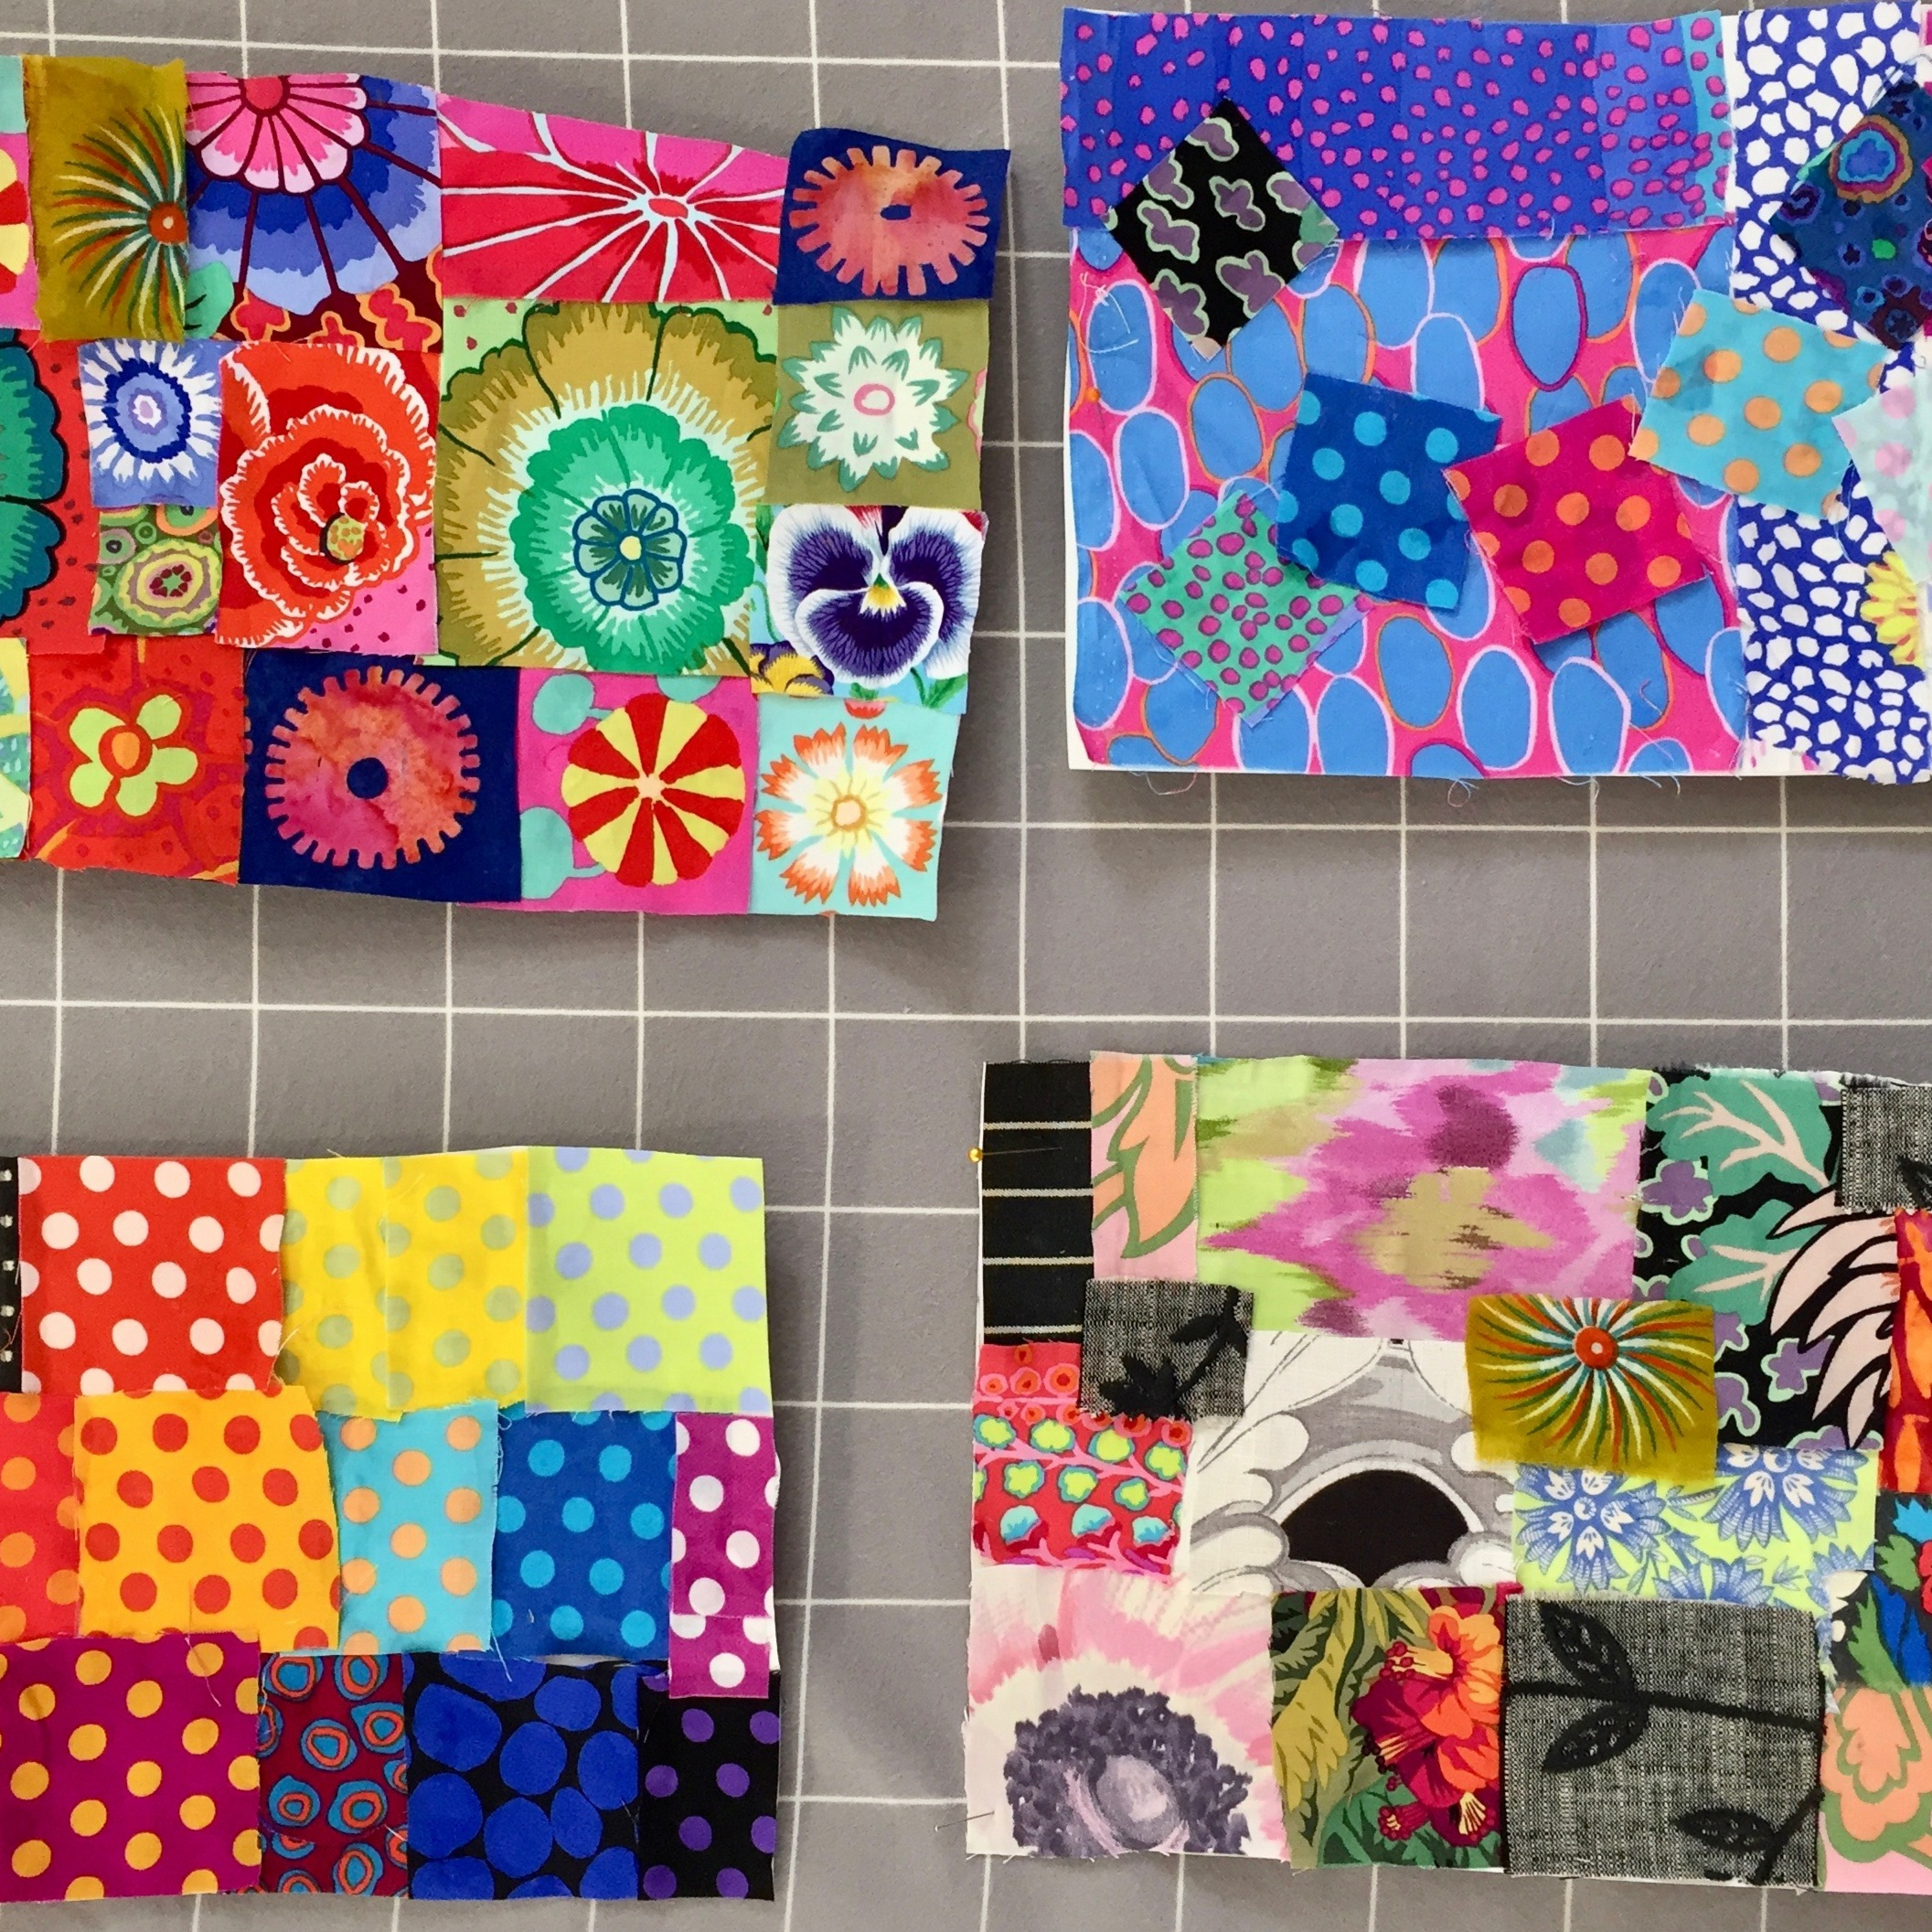 Exploring Colour - with Kaffe Fassett and Brandon Mabley, July 2017 & July 2018